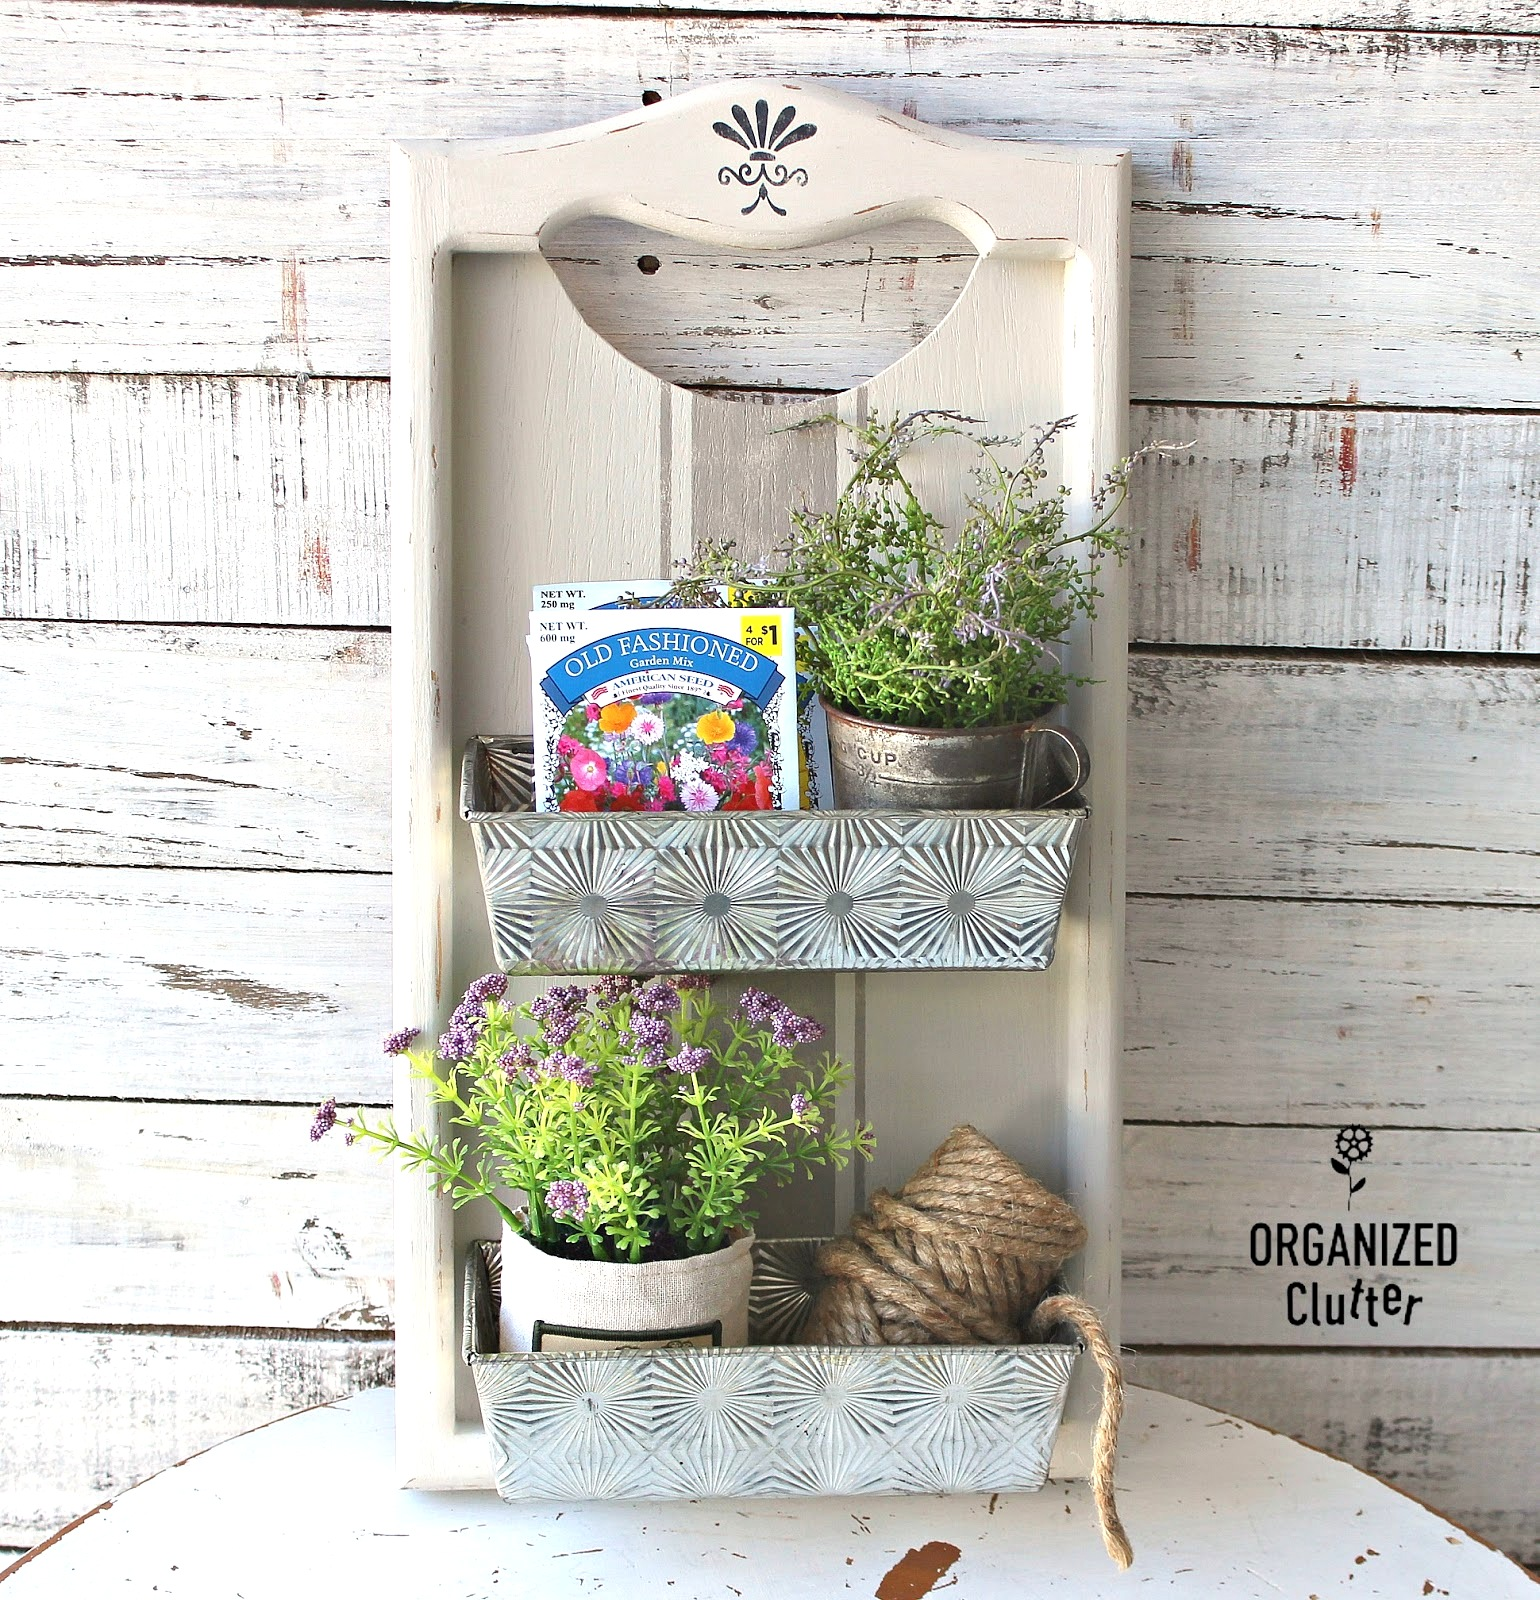 Farmhouse wall bin decor by Organized Clutter, featured on DIY Salvaged Junk Projects 521 on Funky Junk!